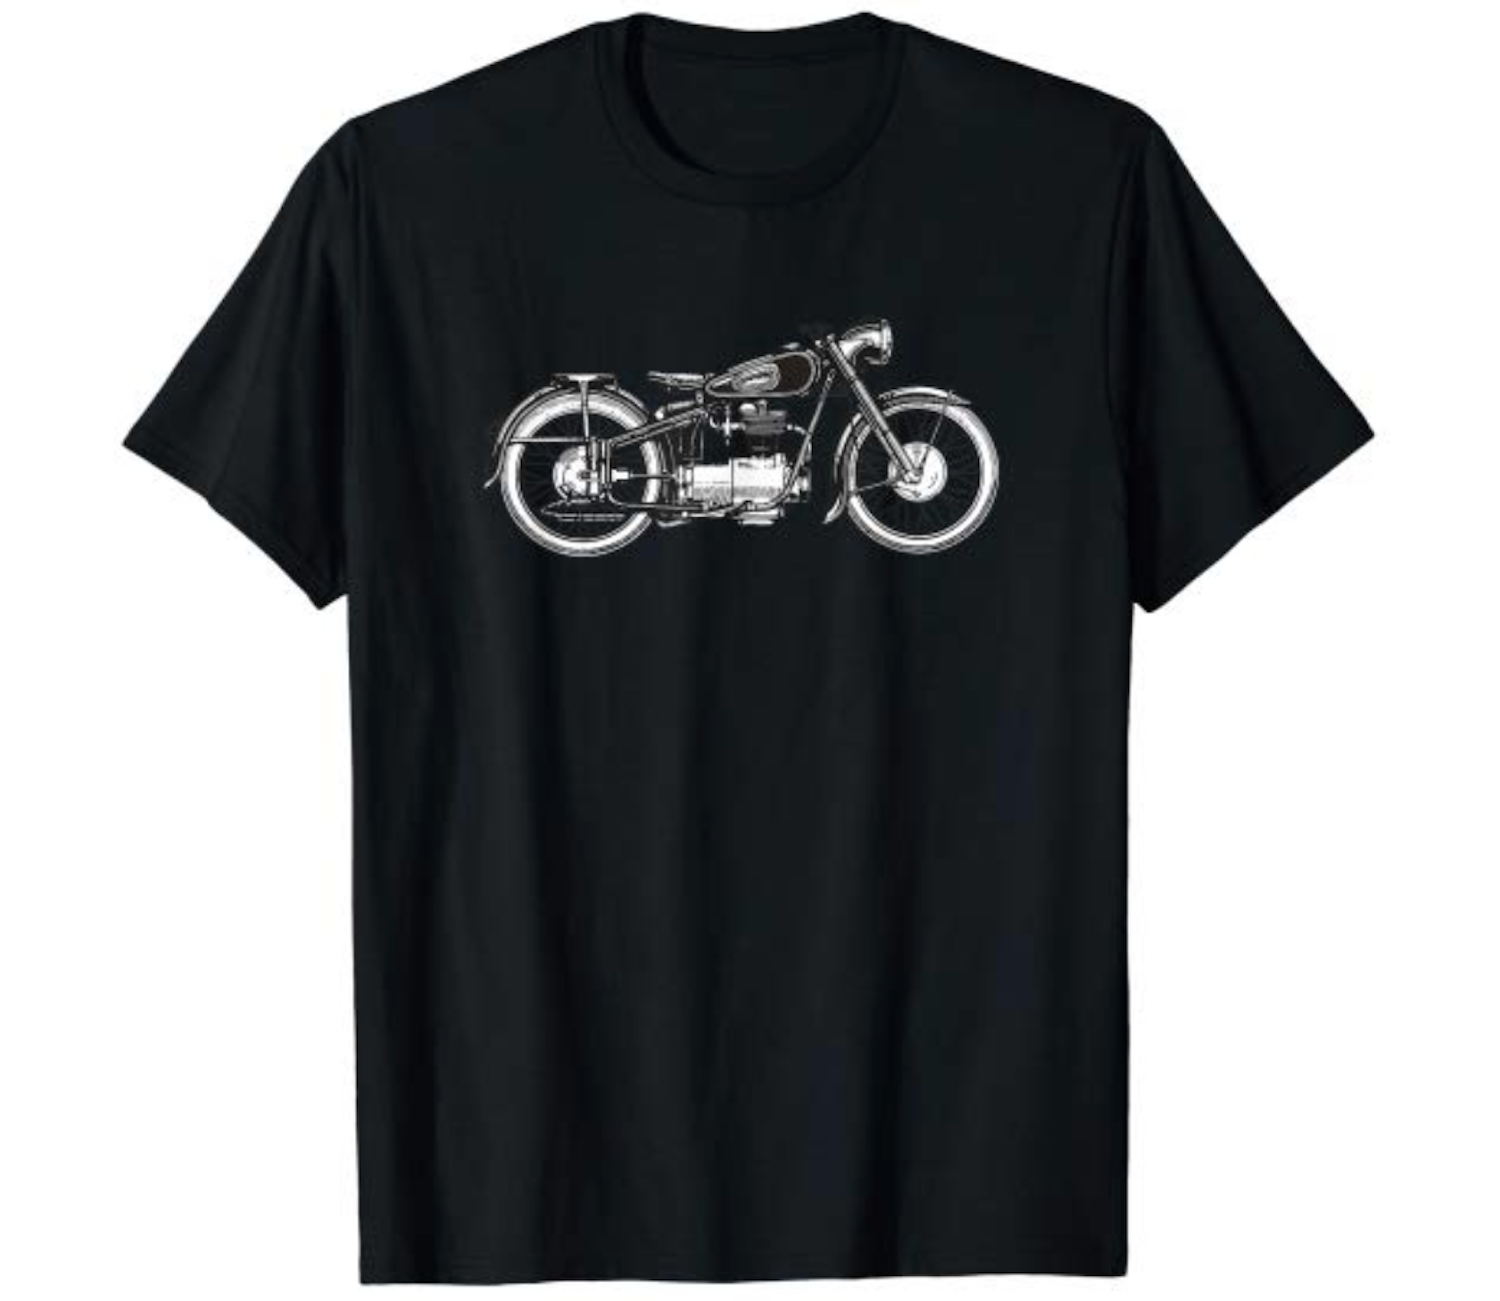 Retro vintage motorcycle shirt